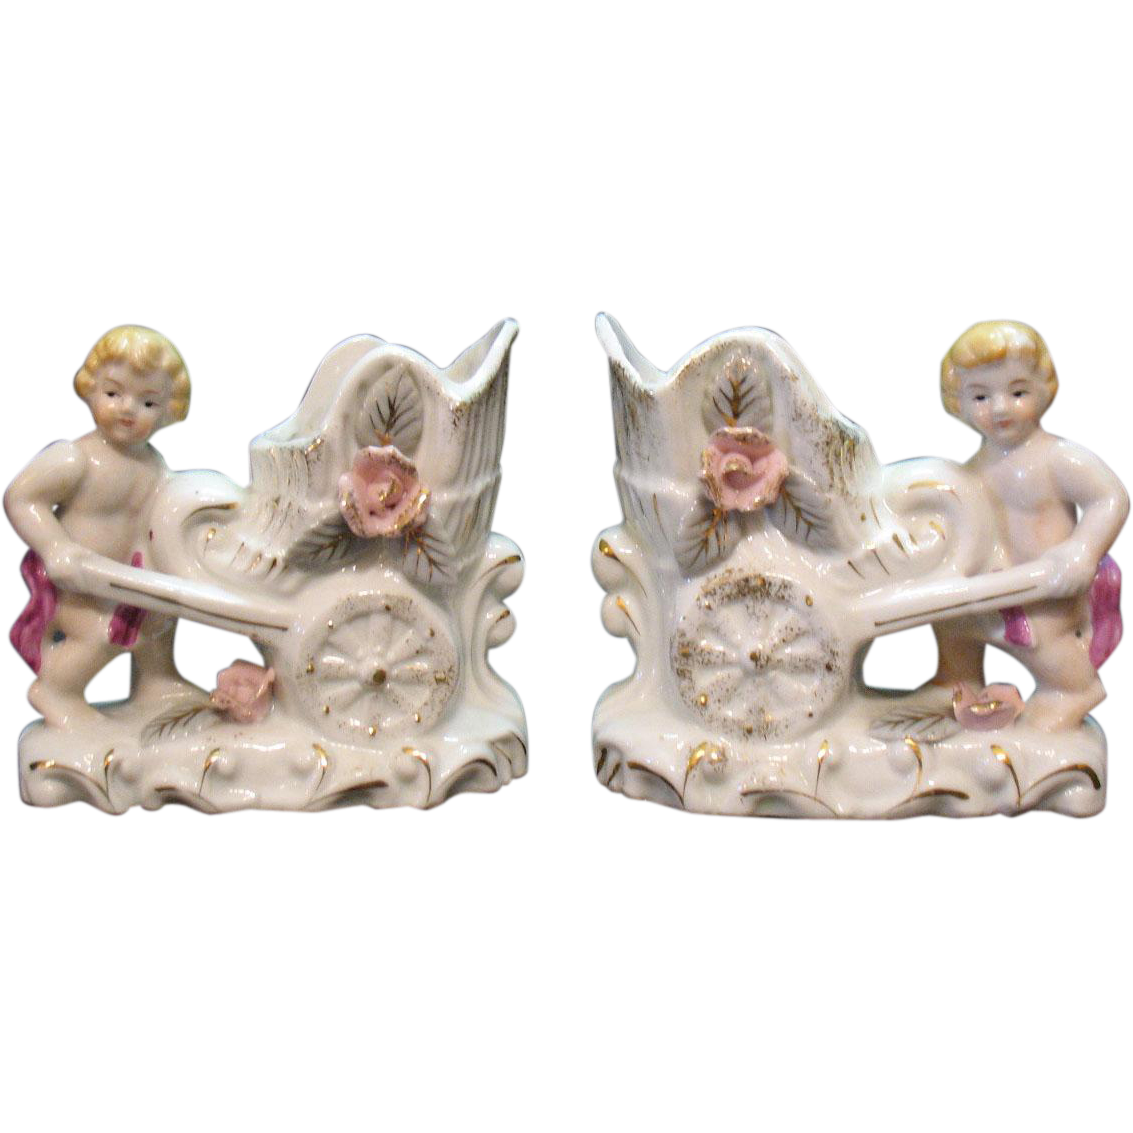 Pair of Vintage Porcelain Cherub Planters 1950-60s Very Good Condition